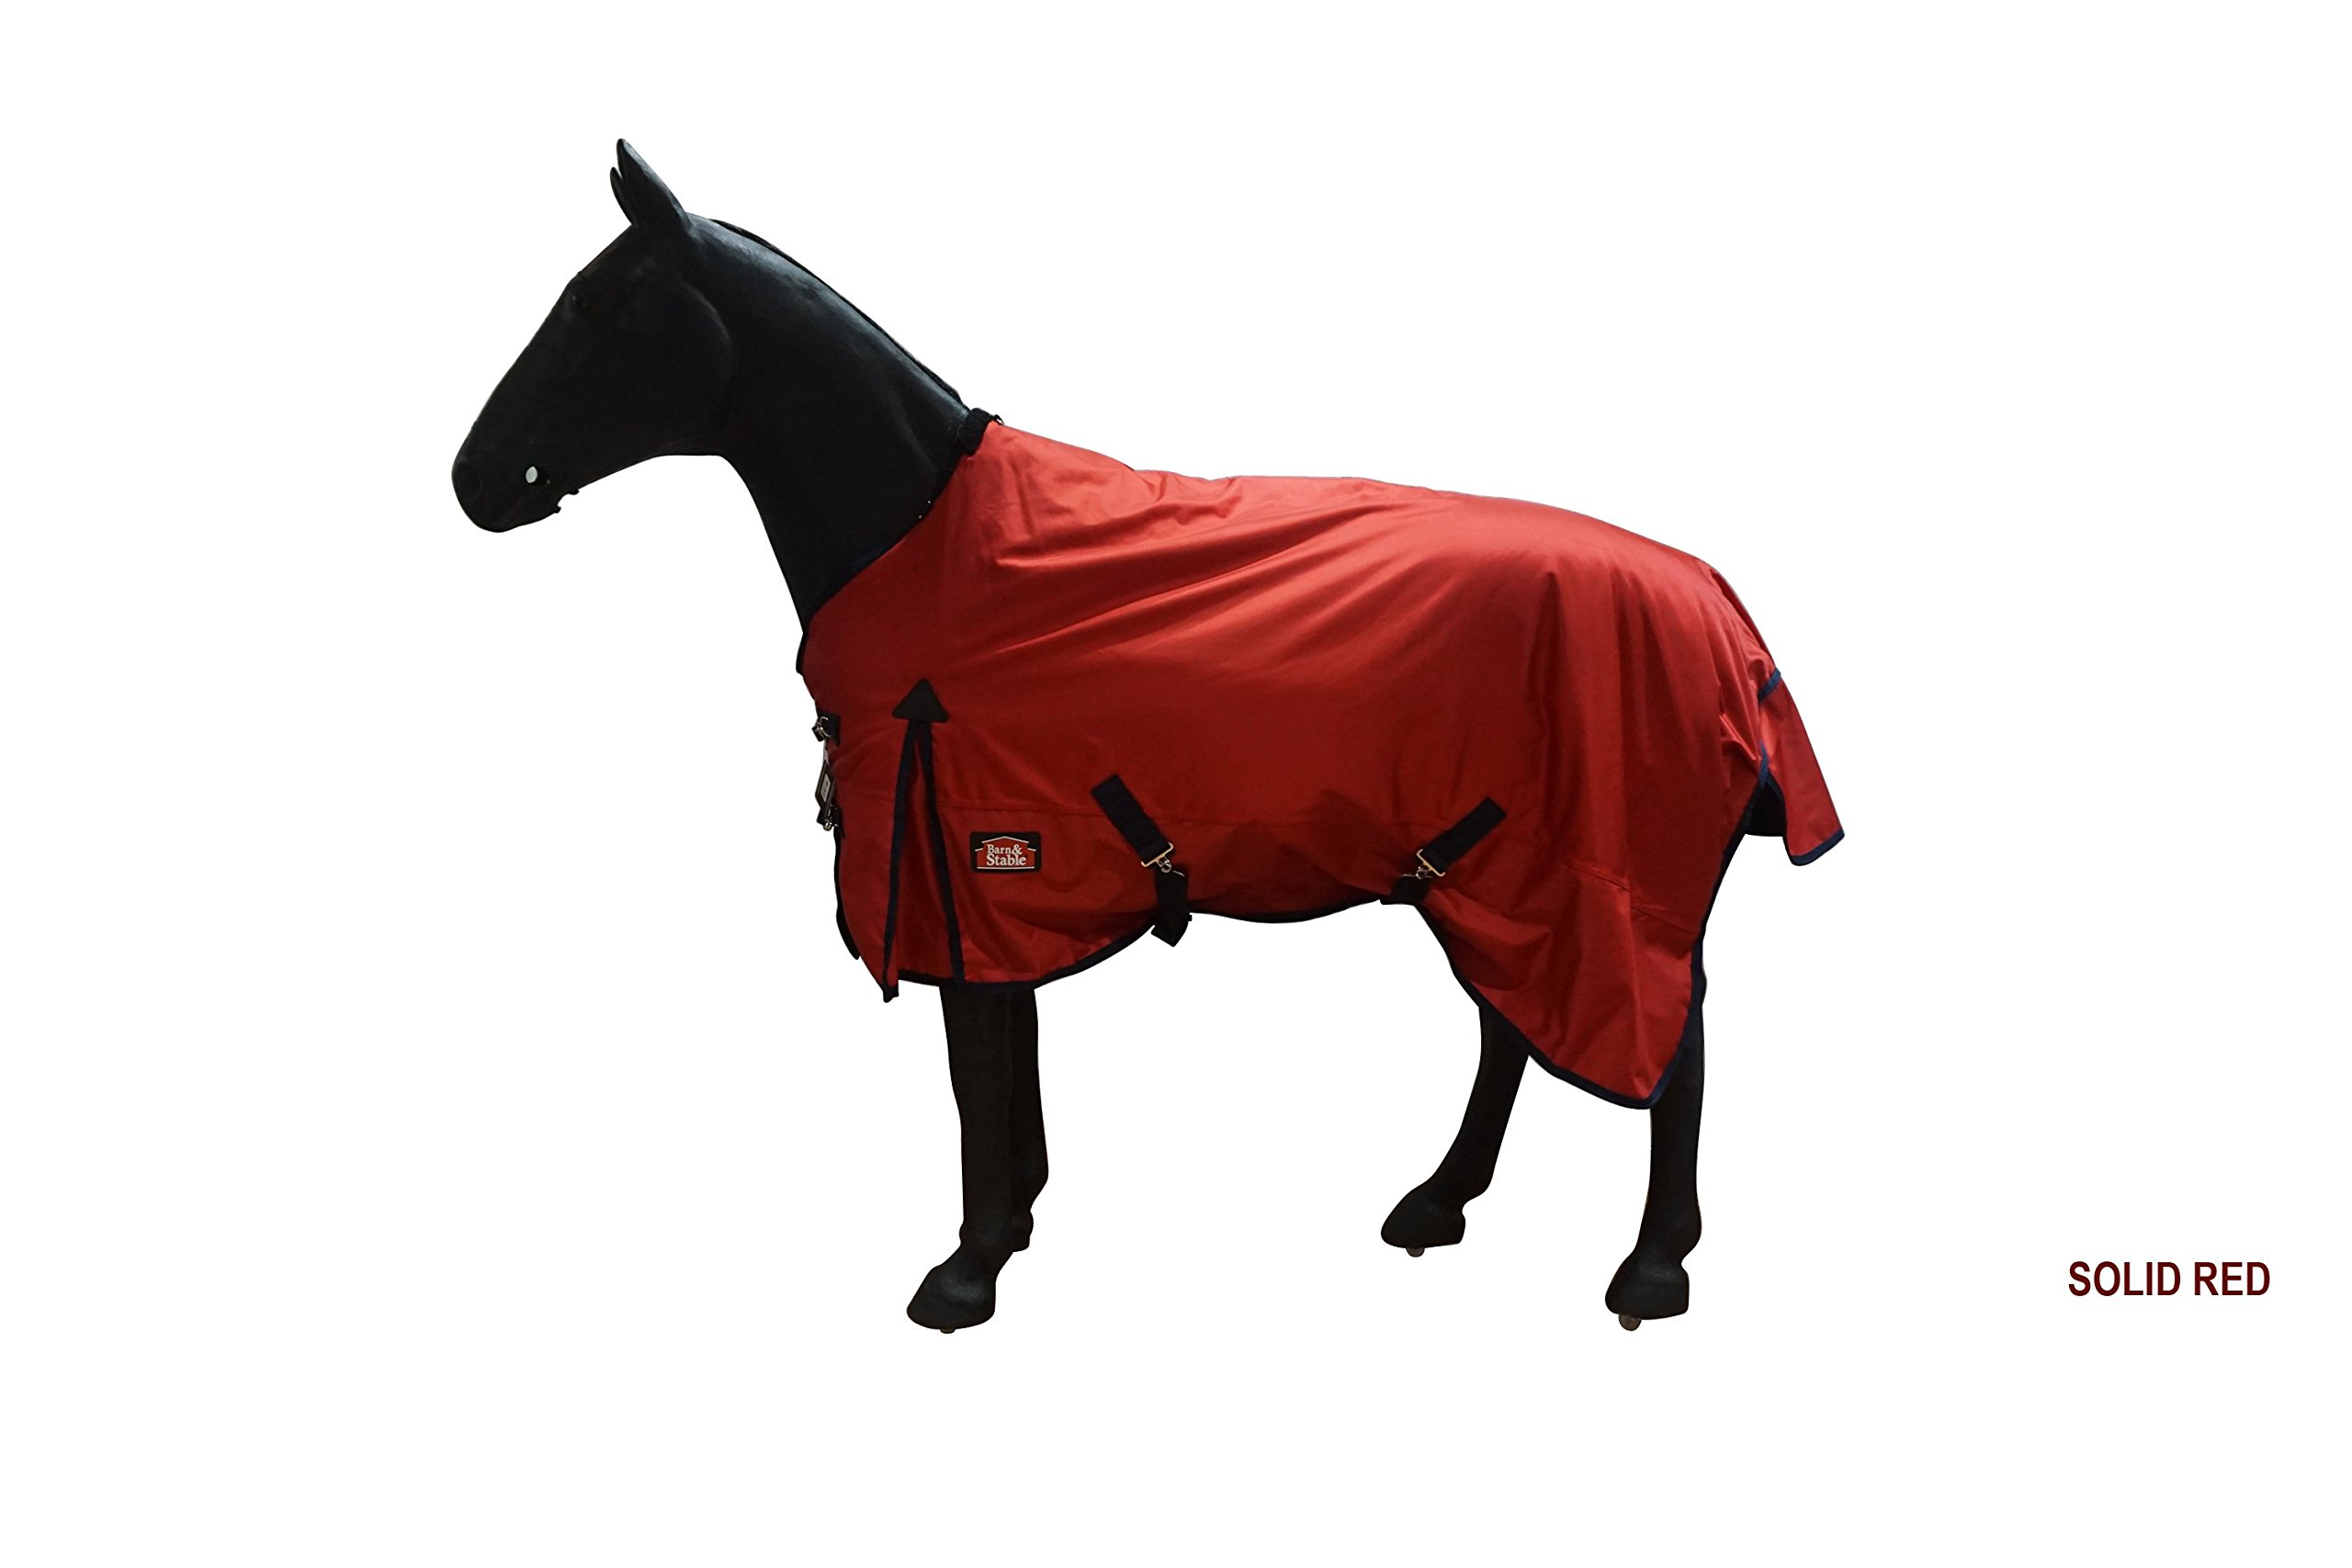 Barn & Stable Horse Blanket Turnout Blanket 1680D, 210D Lining and 200grm Fill by Barn&Stable